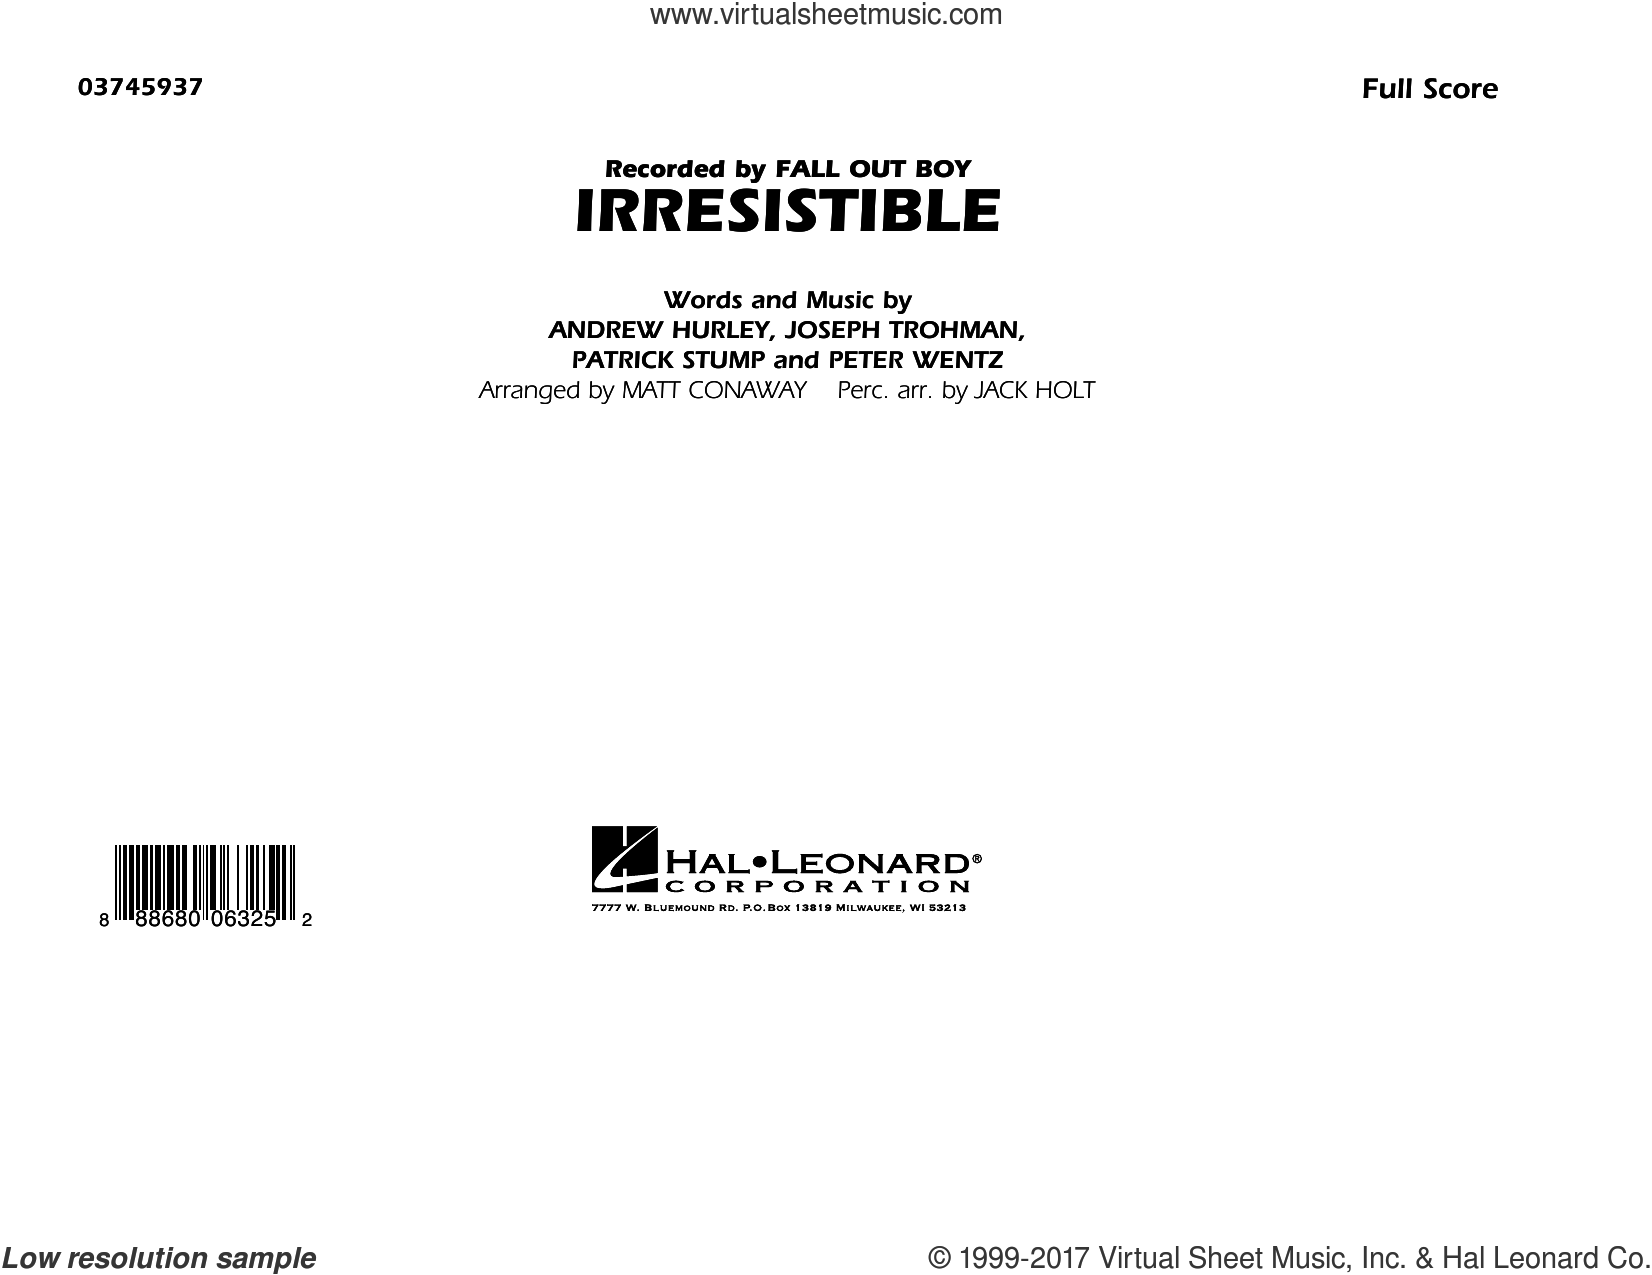 Irresistible (COMPLETE) sheet music for marching band by Matt Conaway, Andrew Hurley, Fall Out Boy, Joseph Trohman, Patrick Stump and Peter Wentz, intermediate skill level